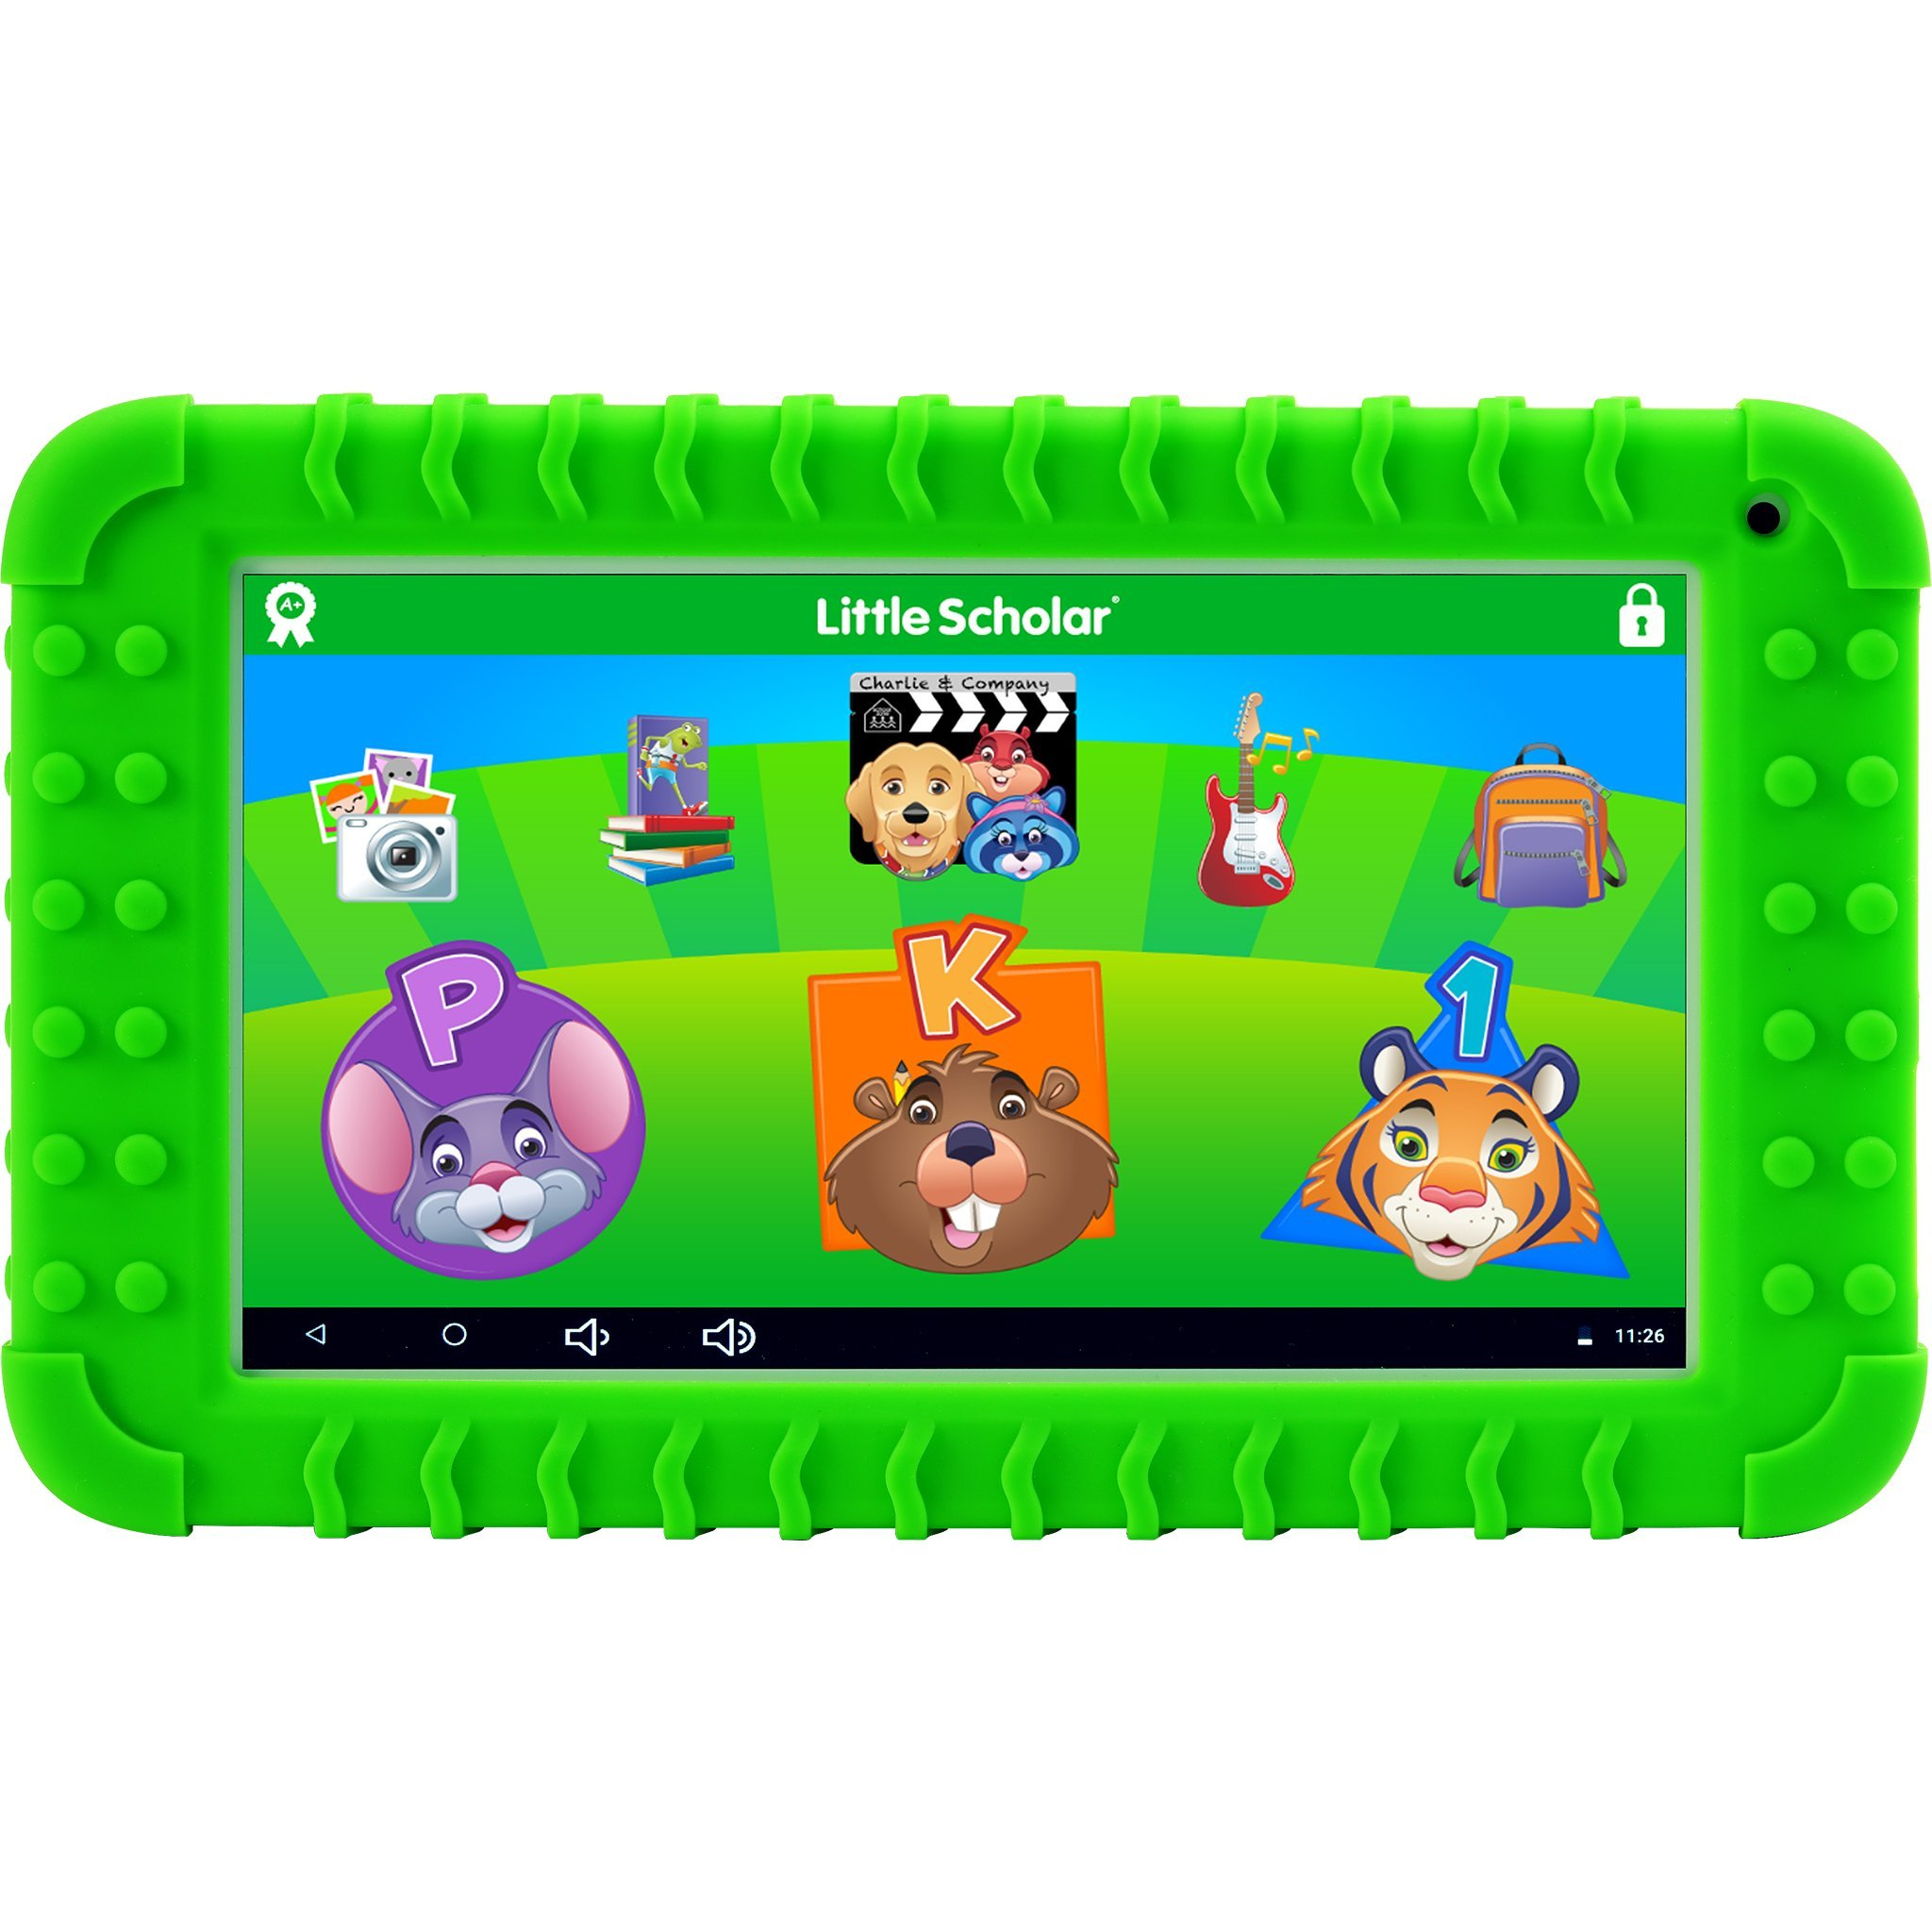 School Zone - Little Scholar Kids Learning Tablet - Ages 3 to 7, Preschool, Kindergarten, 1st Grade, 7'' Display, 70+ Preloaded Educational Apps, Screen Protector, Silicone Bumper, 16 GB, Wifi, Camera by School Zone